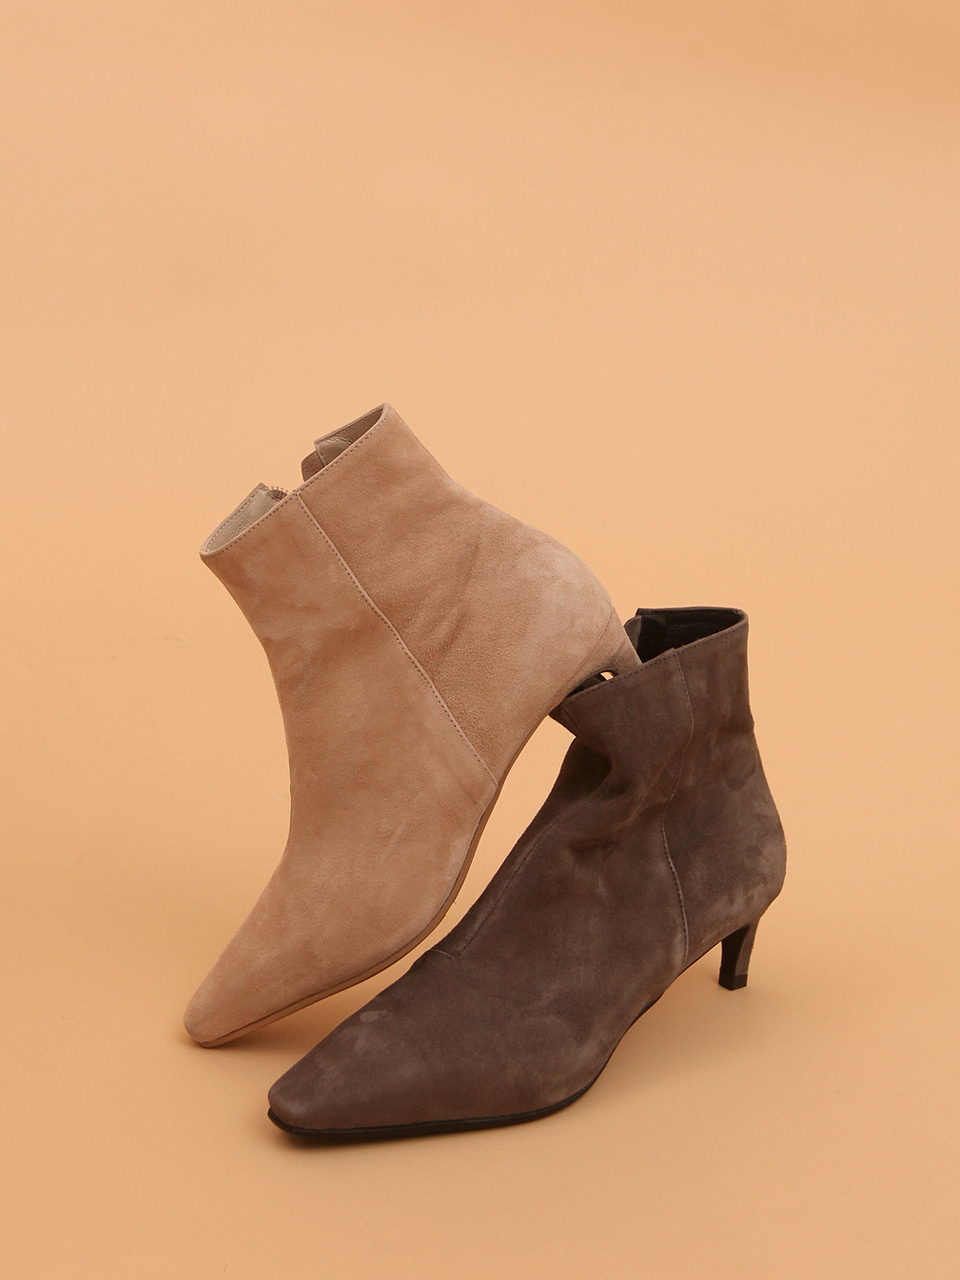 Mrc047 Soft Ankle Boots (Light Beige Suede)